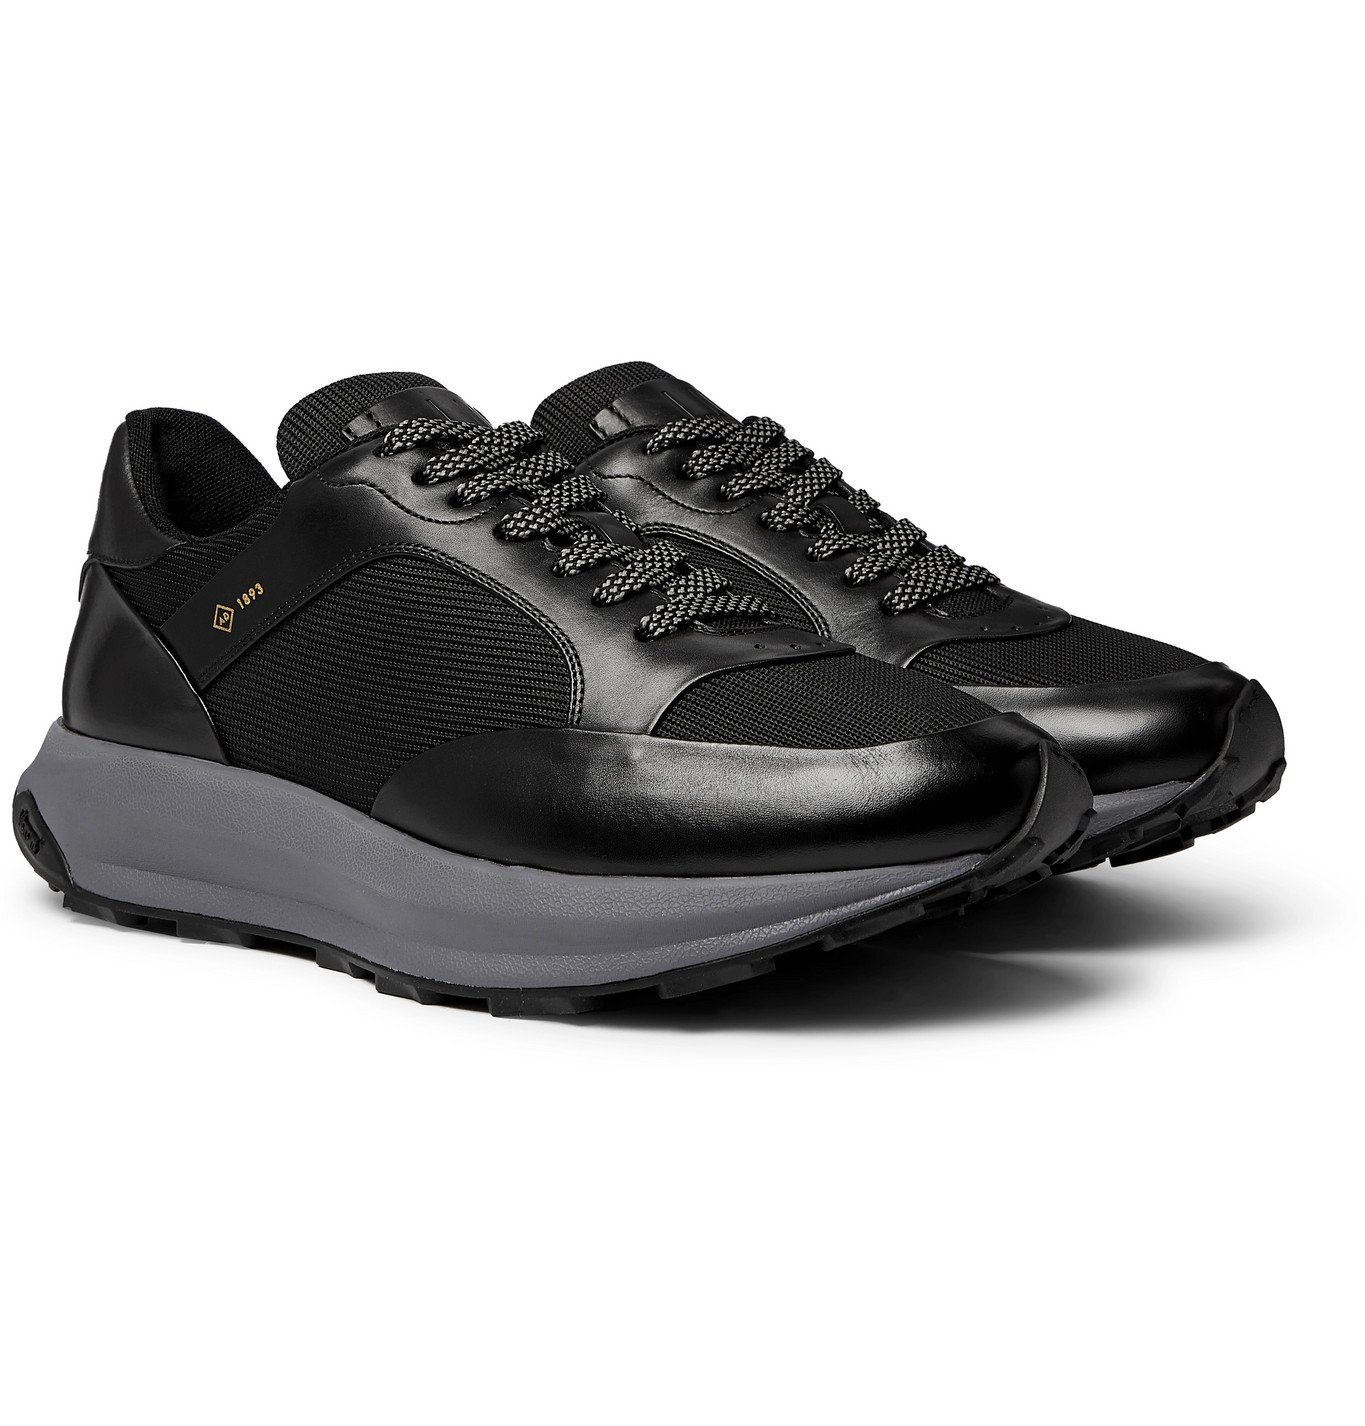 Dunhill - Aerial Patina Mesh and Leather Sneakers - Black